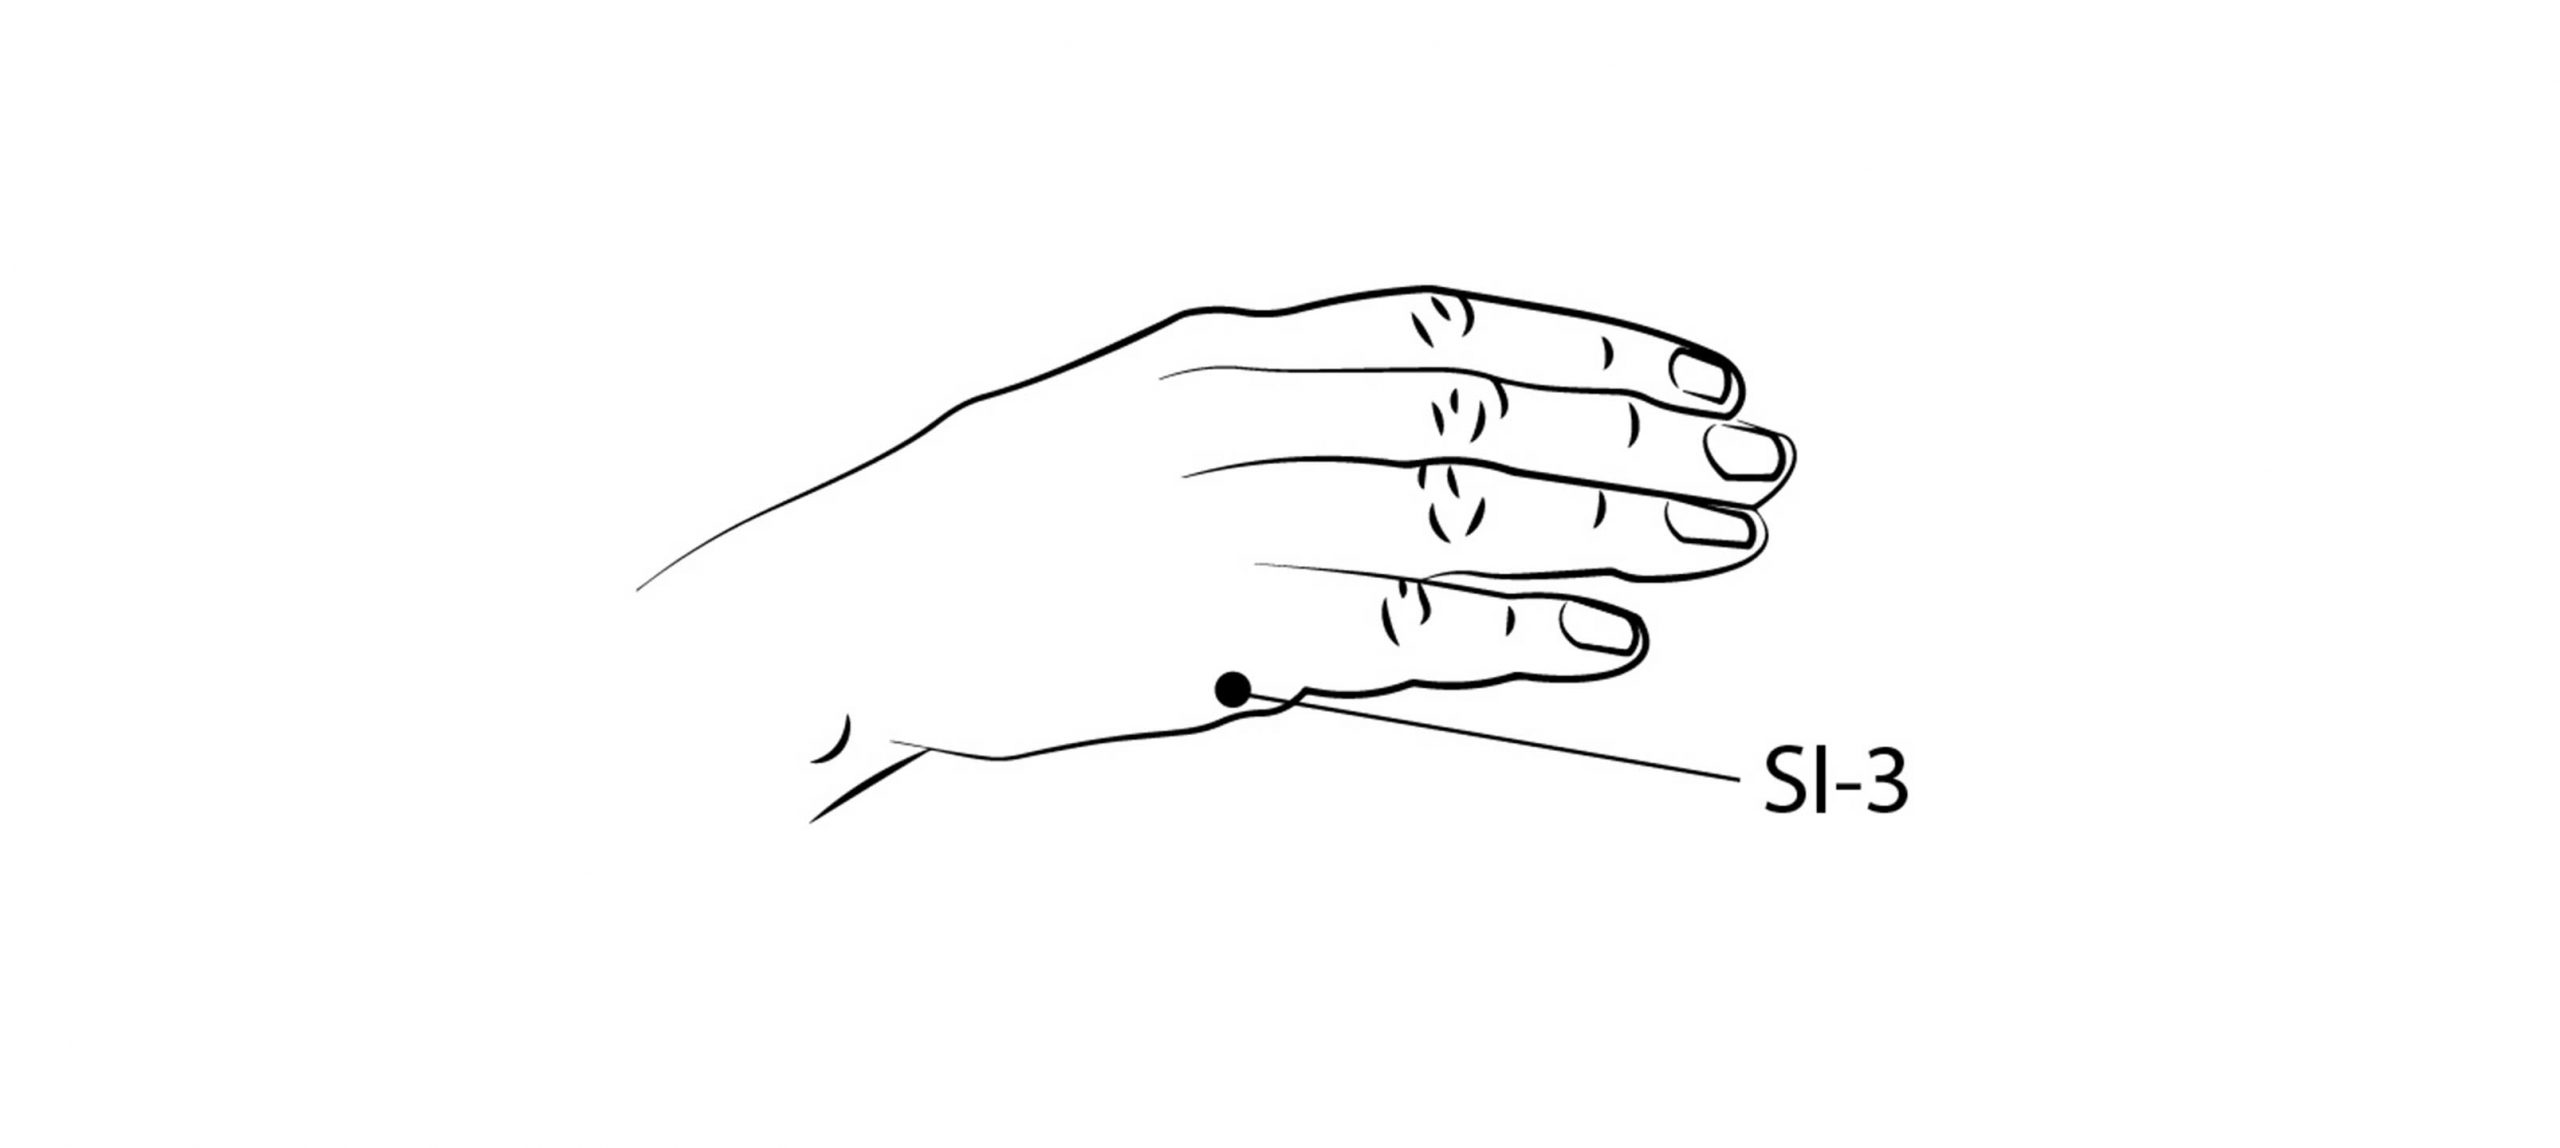 acupoint diagram showing the karate chop point on side of hand